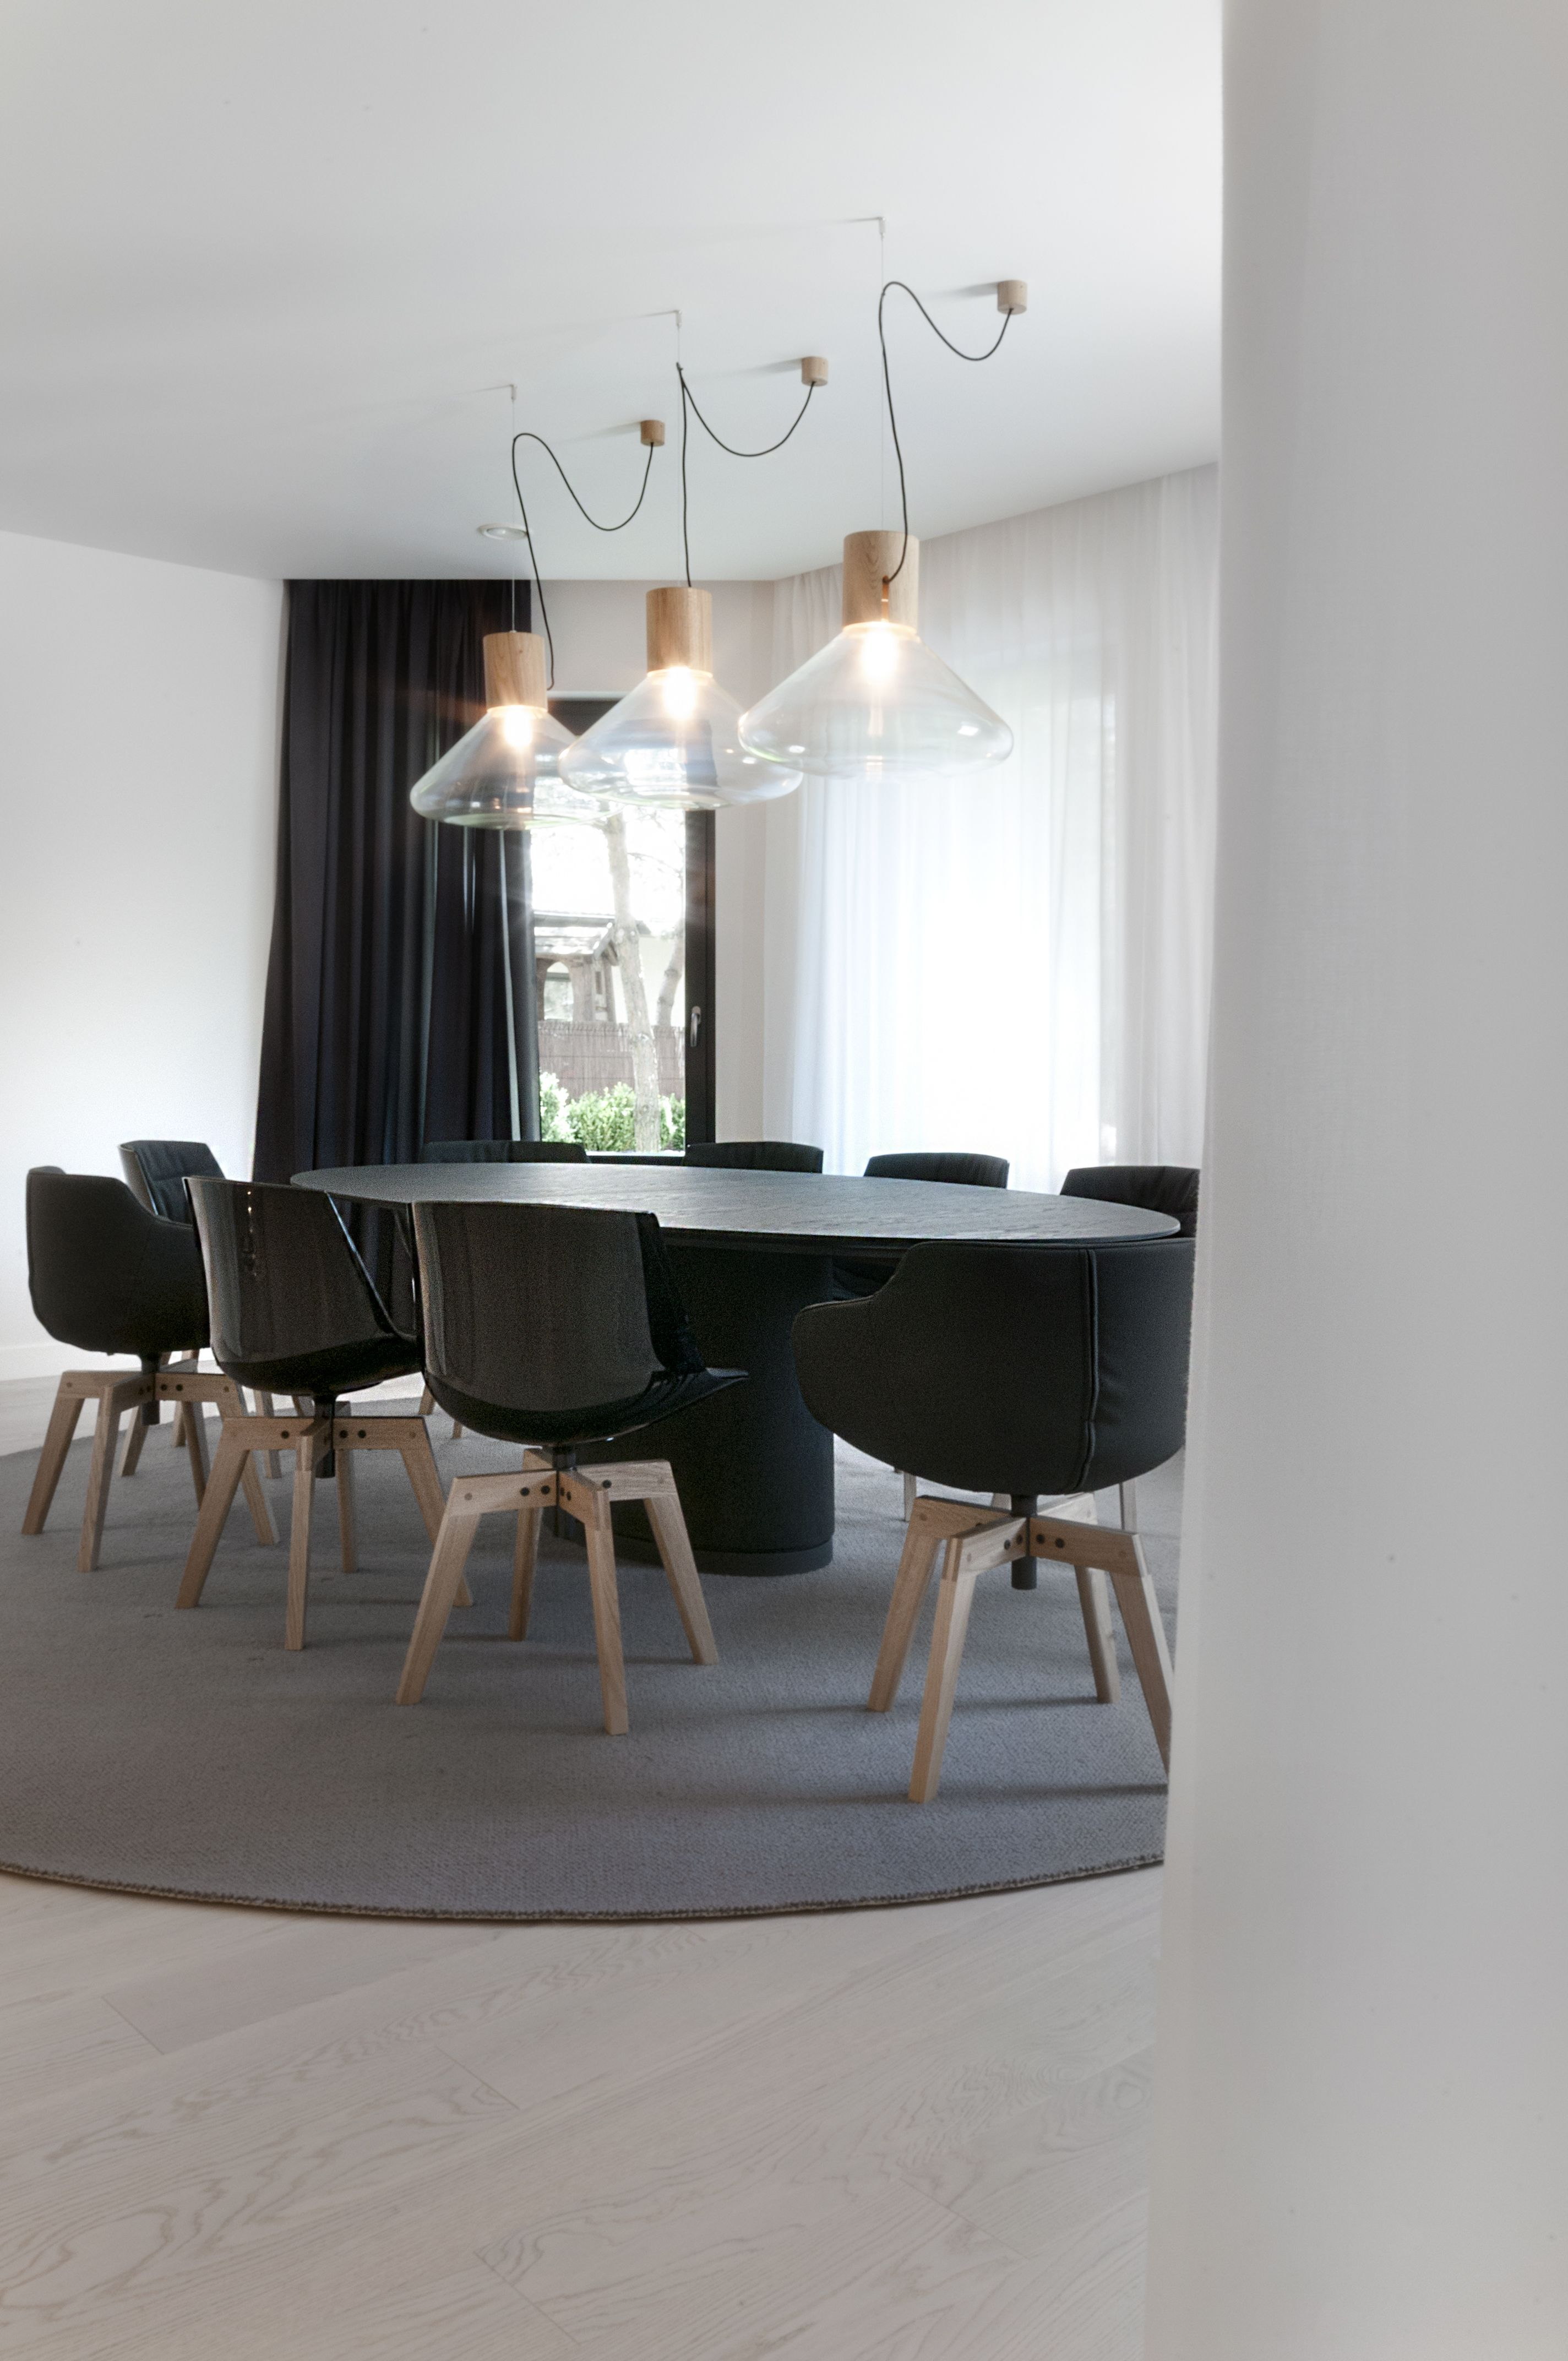 Incredible Architect Tamizo Architects Photo Credit Mateusz Kuo Gmtry Best Dining Table And Chair Ideas Images Gmtryco